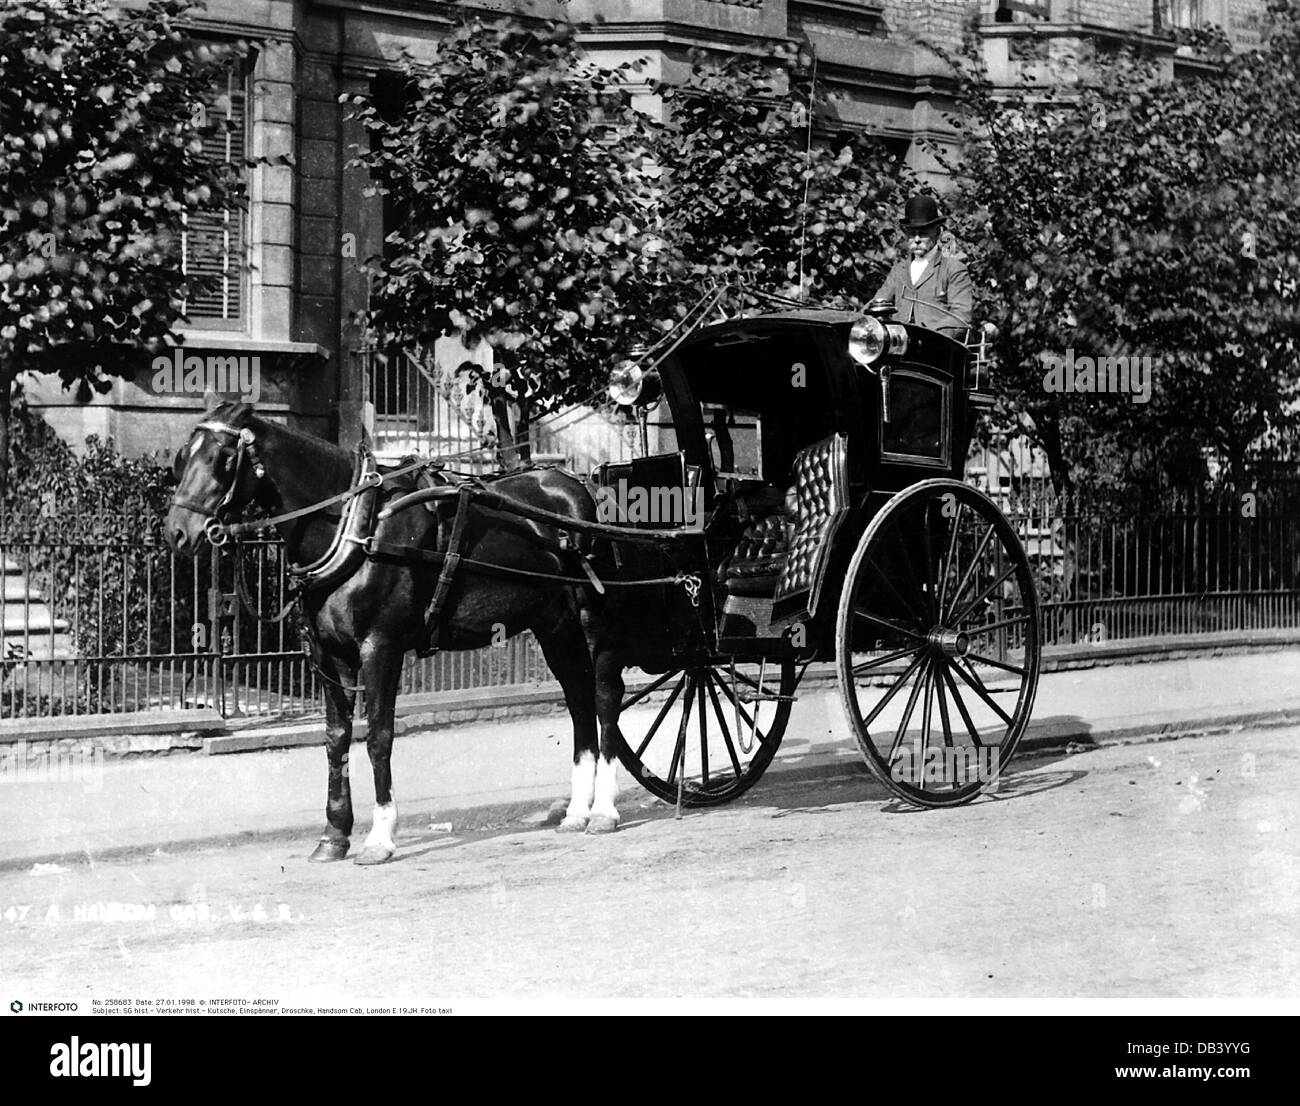 transport / transportation, coach, one-horse carriage, hackney carriage, Handsom Cab, London, Great Britain, late - Stock Image